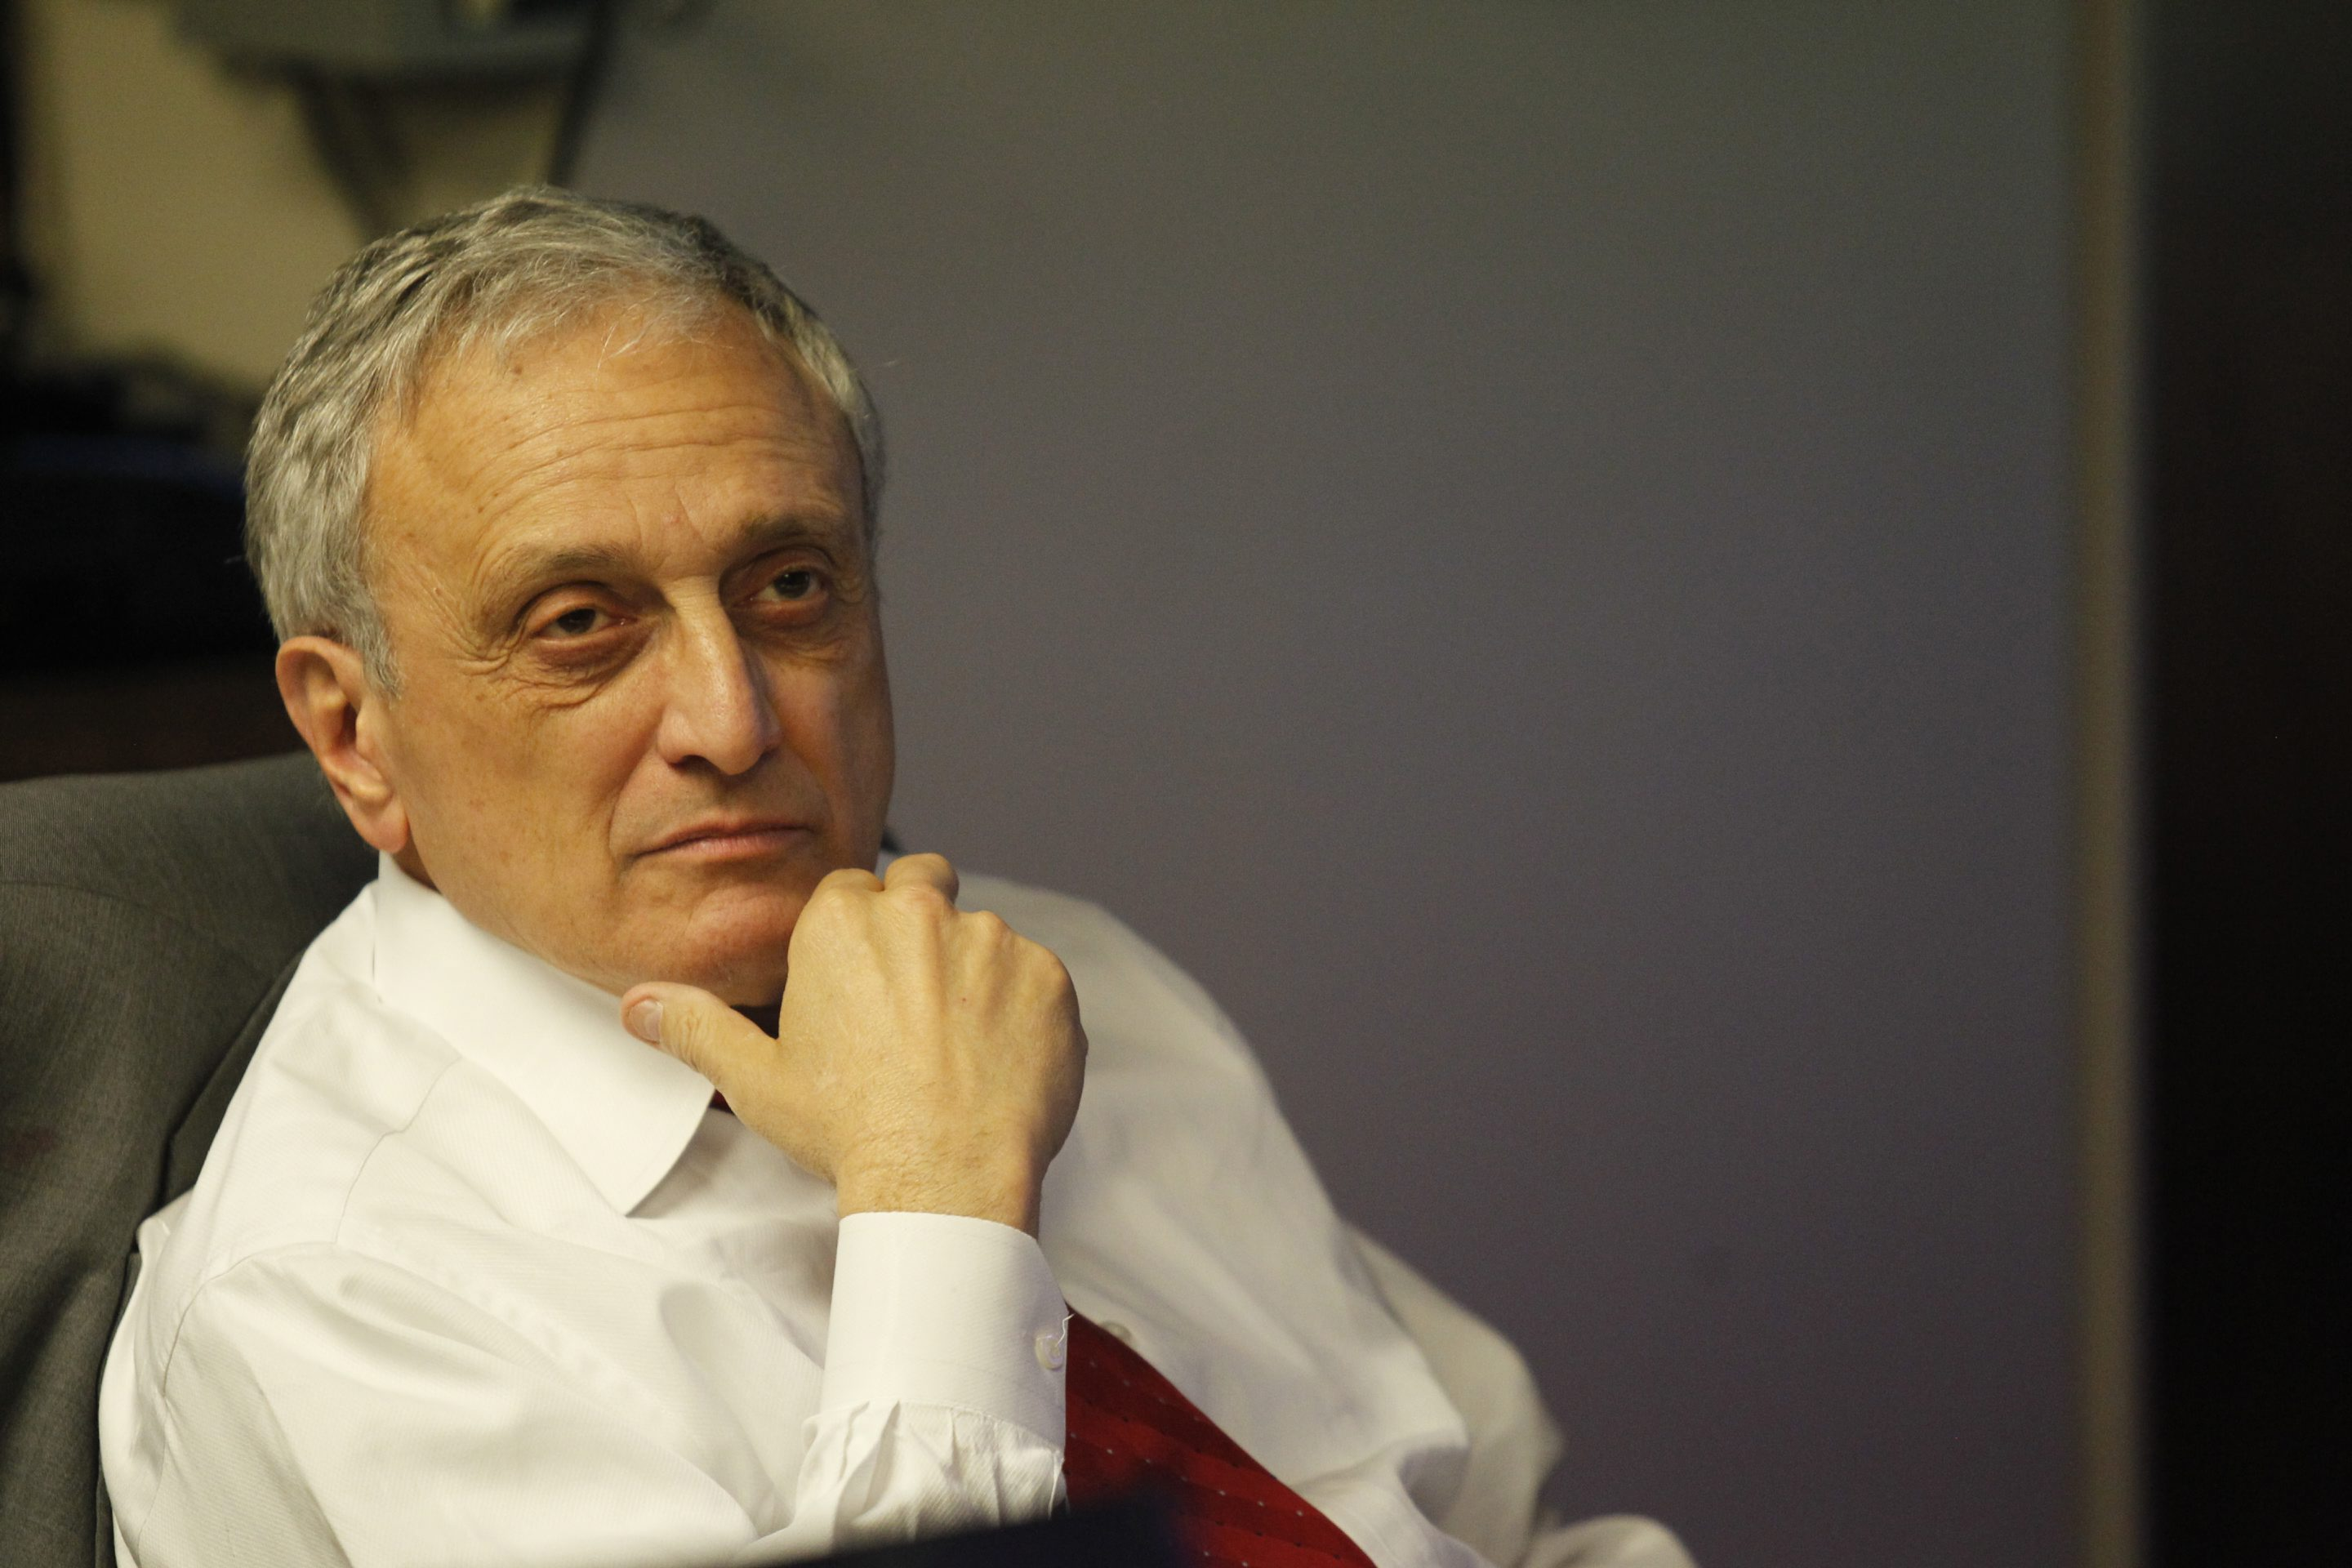 Carl Paladino's attorneys said Thursday night they plan to appeal decision to  remove him from the Buffalo School Board. (Harry Scull Jr./News file photo)